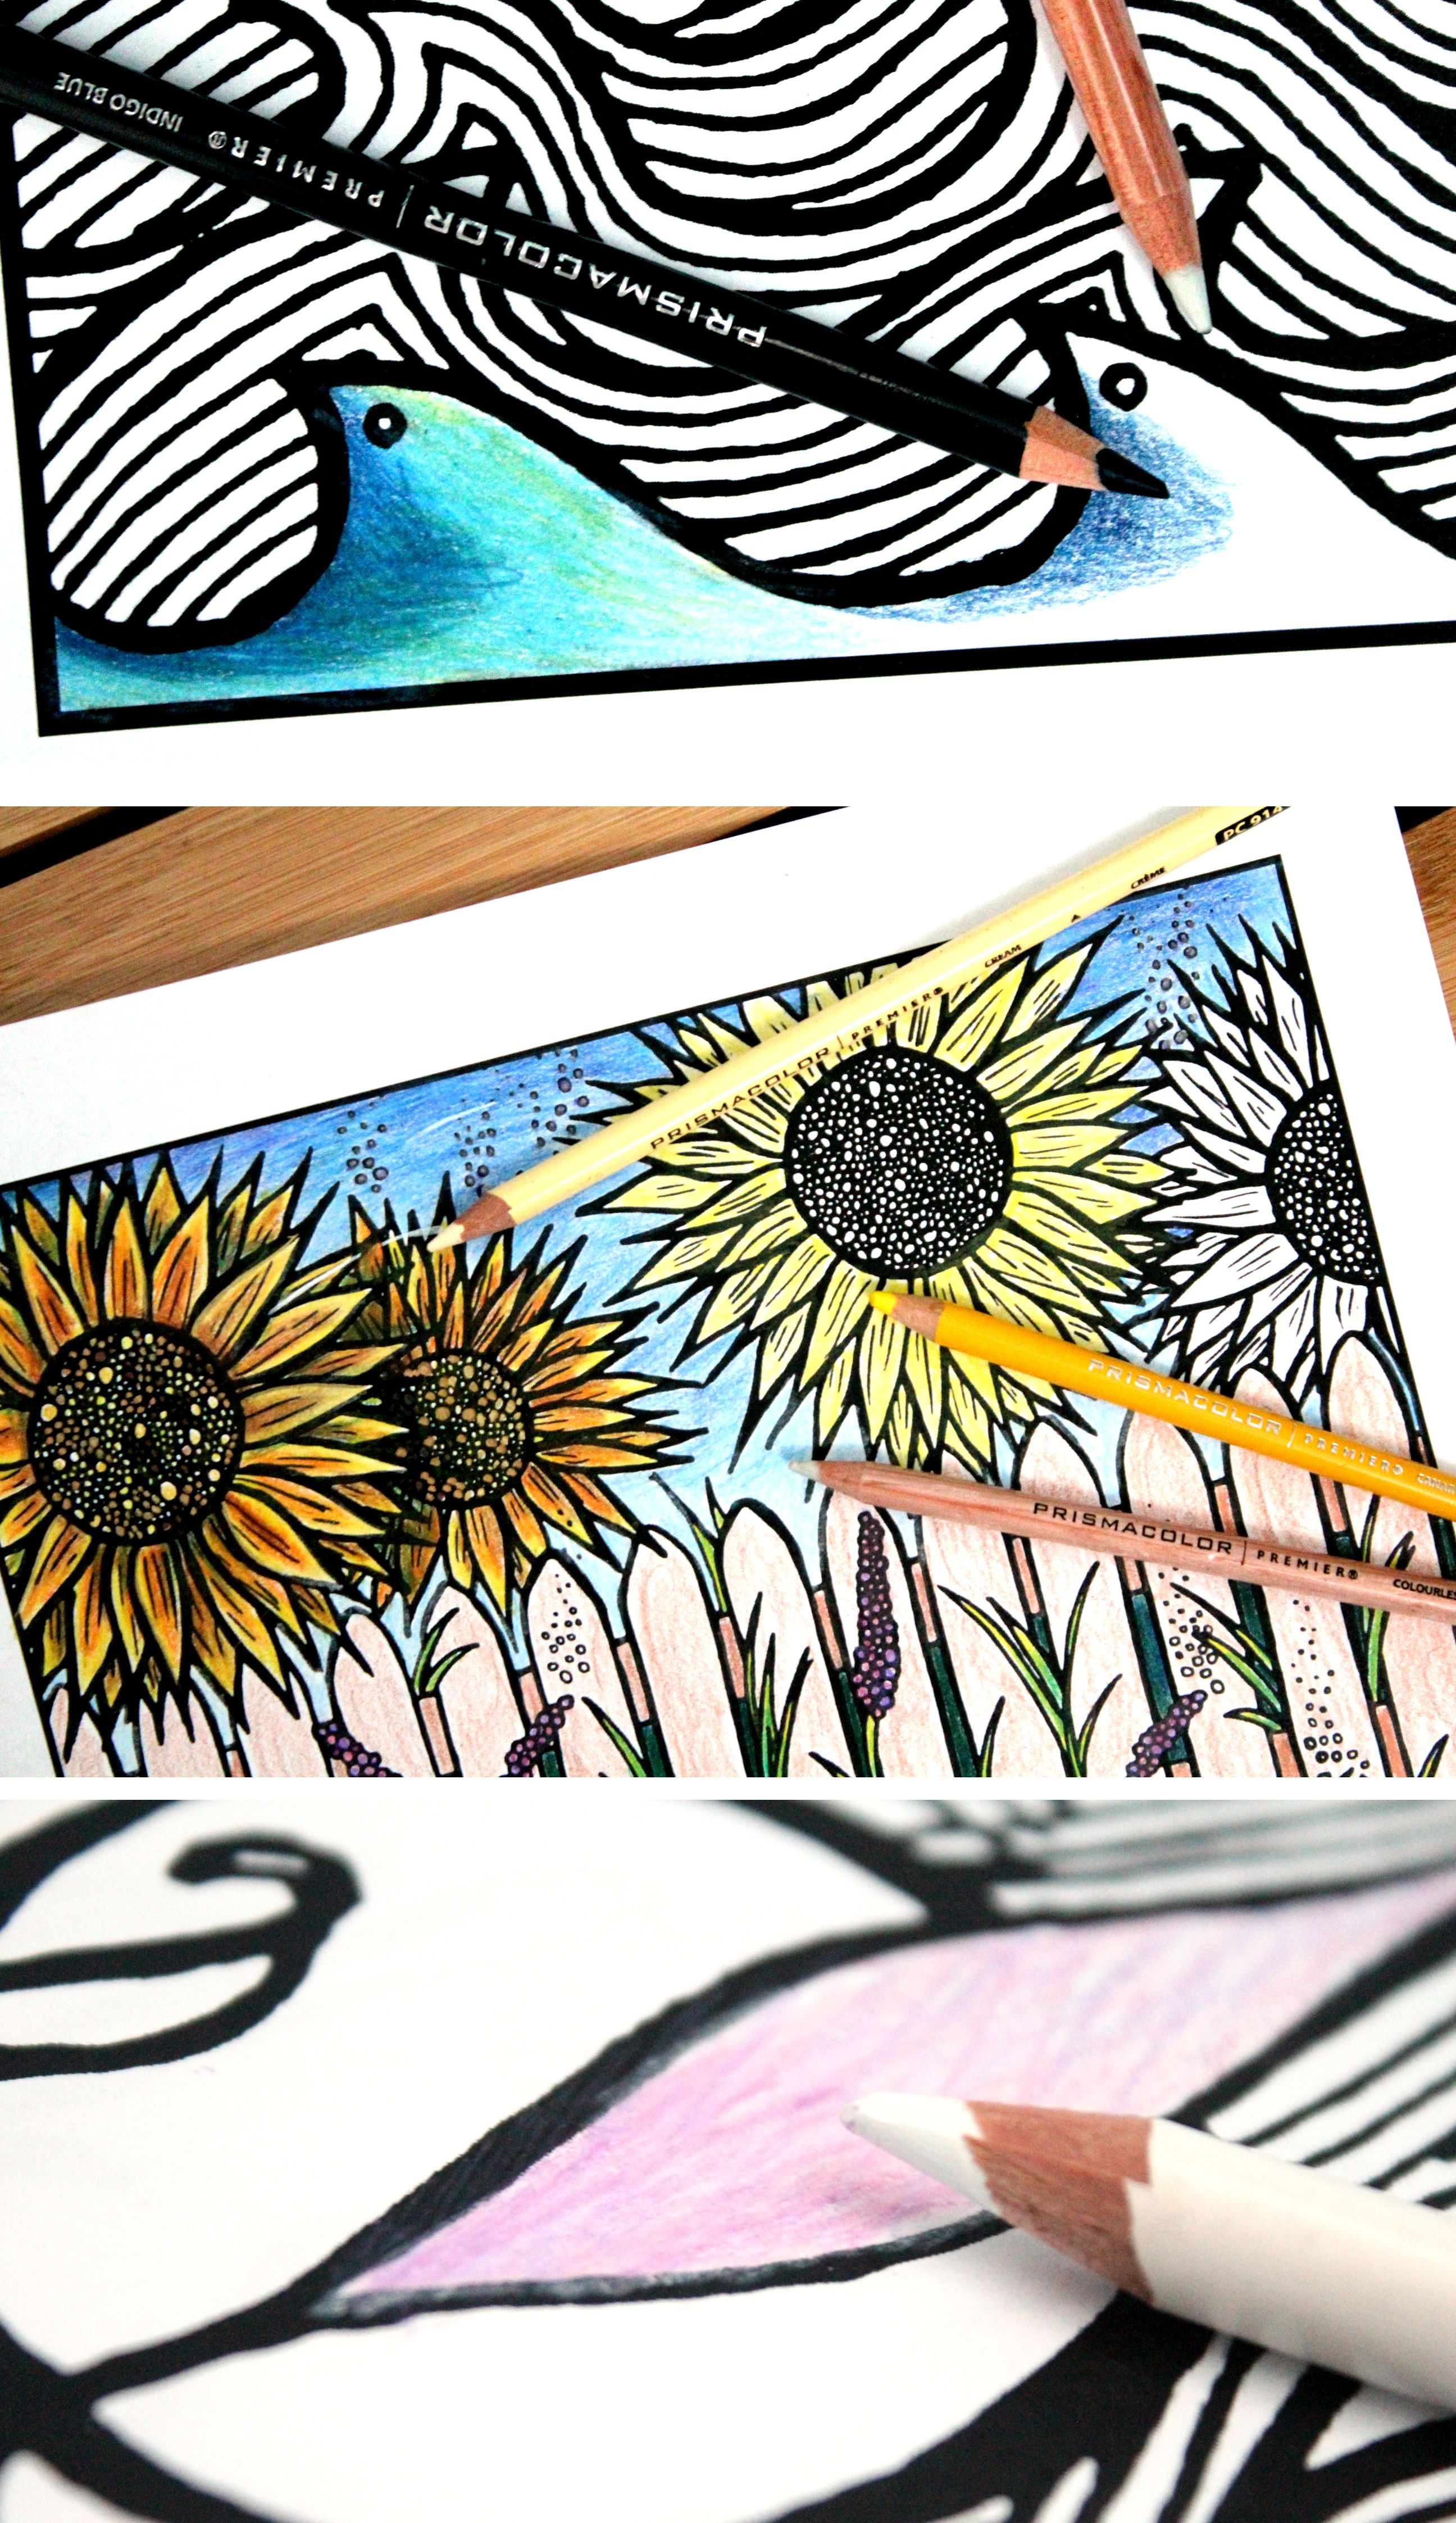 Color Adult Coloring Pages Like A Pro Using Prismacolor Pencils With These Easy Blending Tips